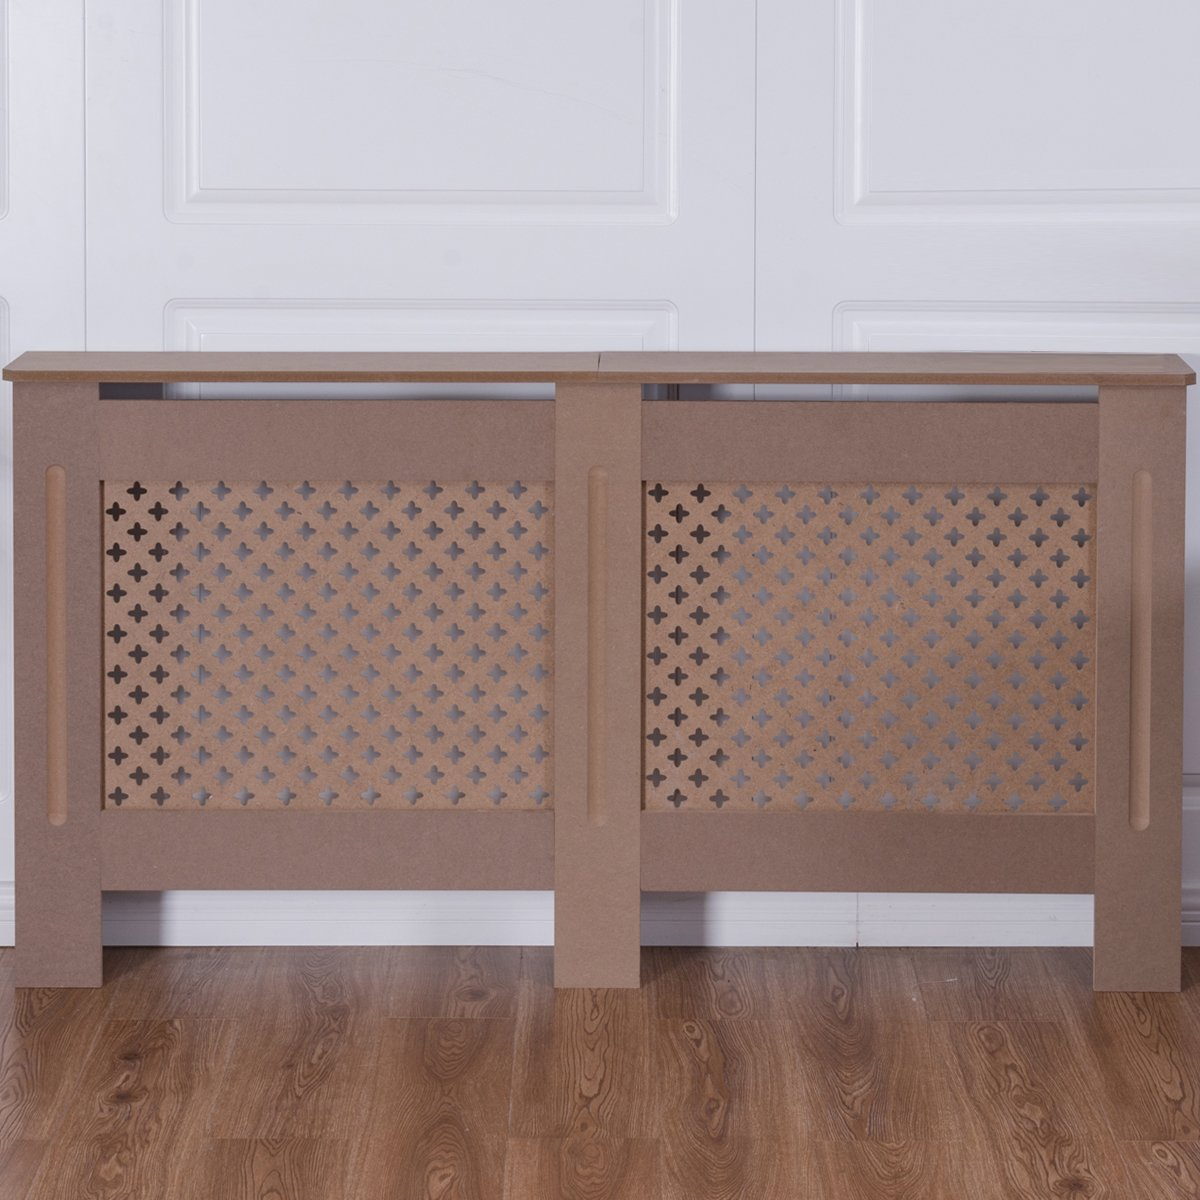 COSTWAY Radiator Cover Wood Home Grill Cabinet Unfinished Or White Small Medium Large (Unfinished, Large)